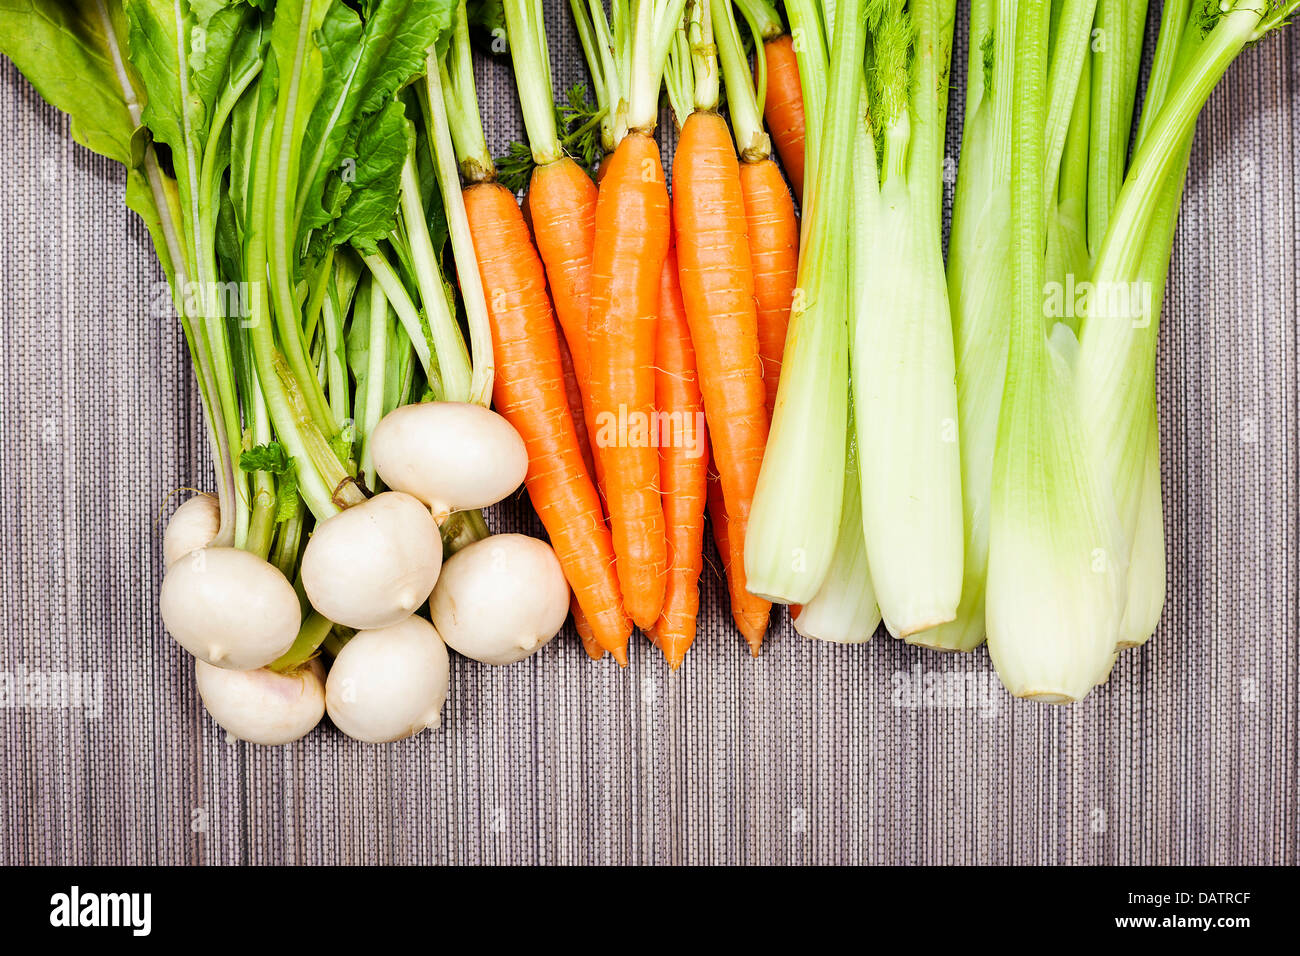 Turnip, carrot and celery from garden - Stock Image